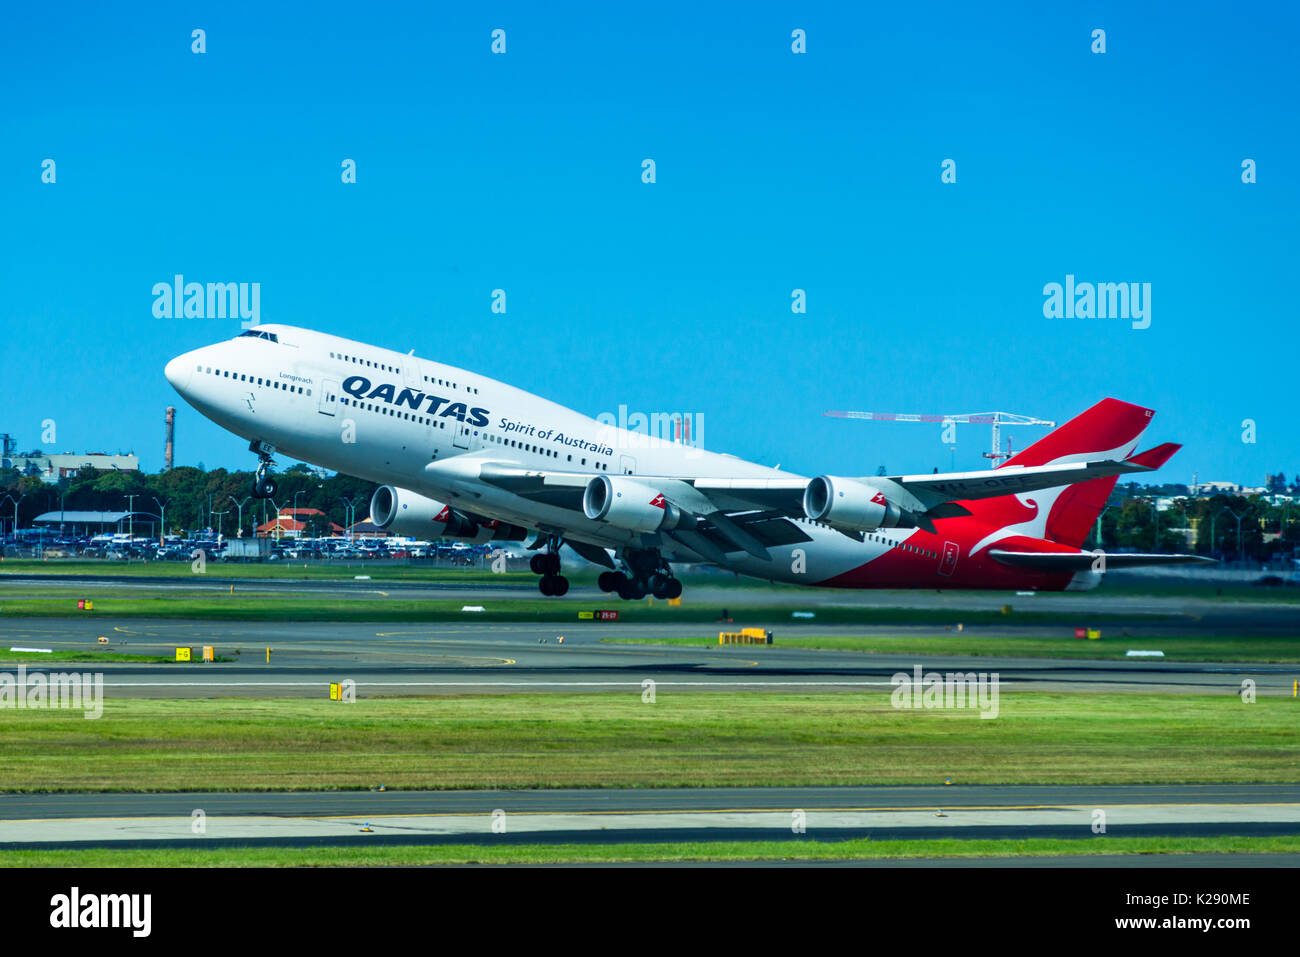 Qantas 747 jumbo jet taking off at Sydney International Airport, New South Wales, Australia. - Stock Image